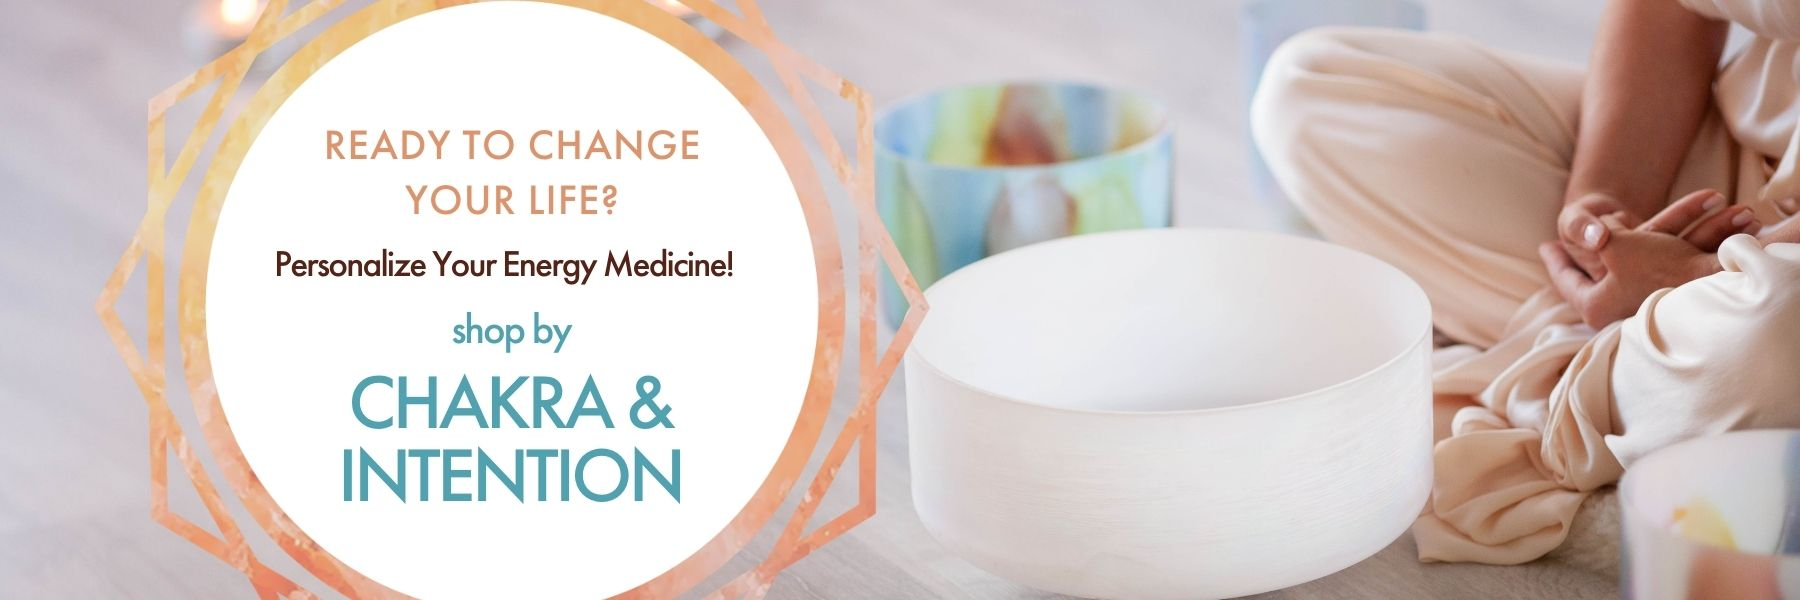 Playing crystal singing bowls sitting on floor. Text: Crystal Singing Bowls: Ready to change your life? Personalize your energy medicine! Shop by Chakra & Intention